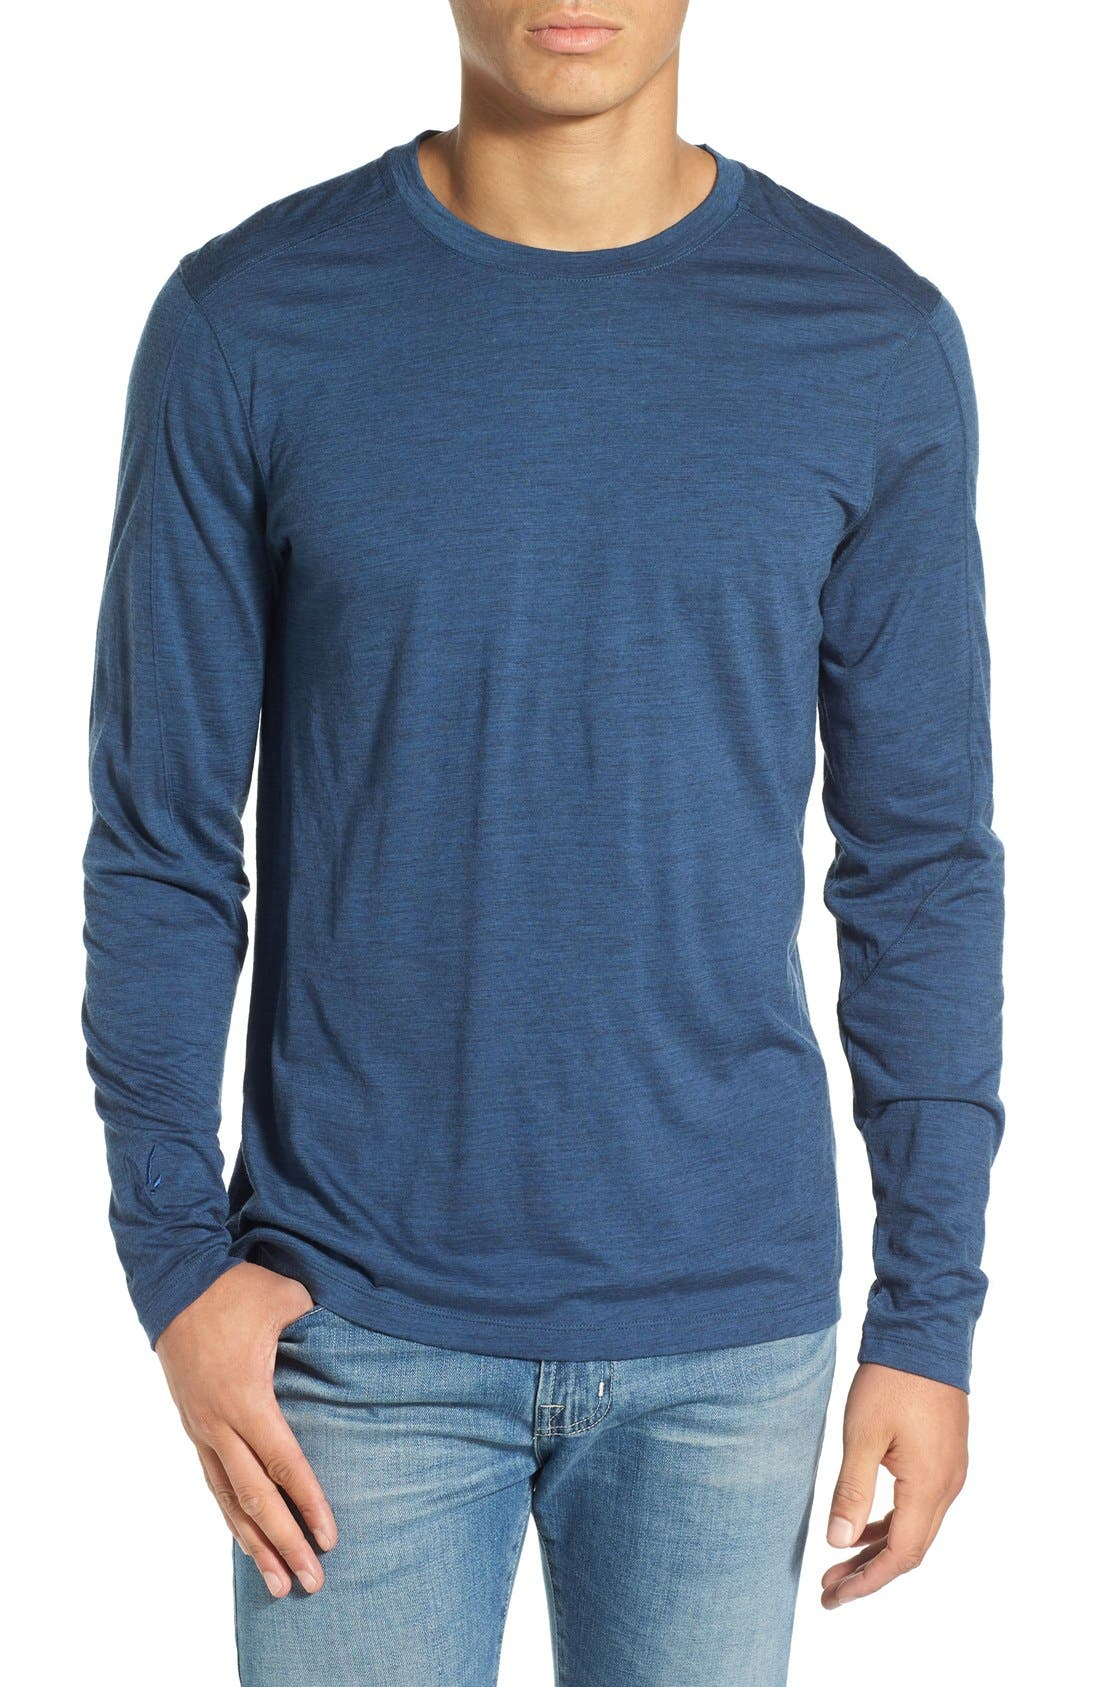 Alternate Image 1 Selected - ibex 'OD' Merino Wool Long Sleeve Crewneck T-Shirt